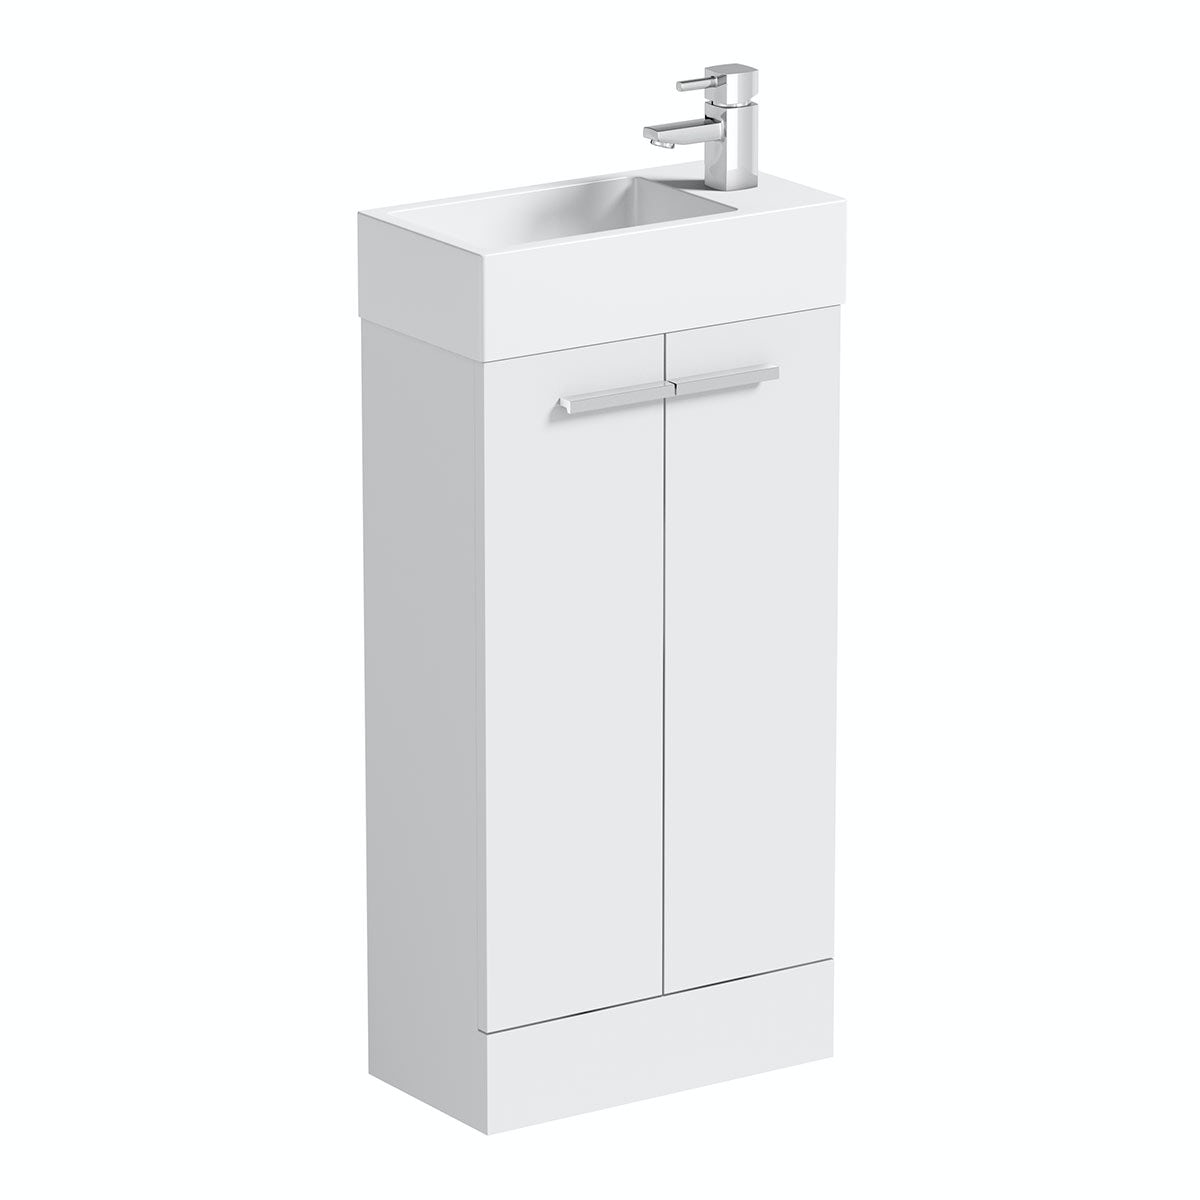 Orchard White cloakroom unit with resin basin 410mm